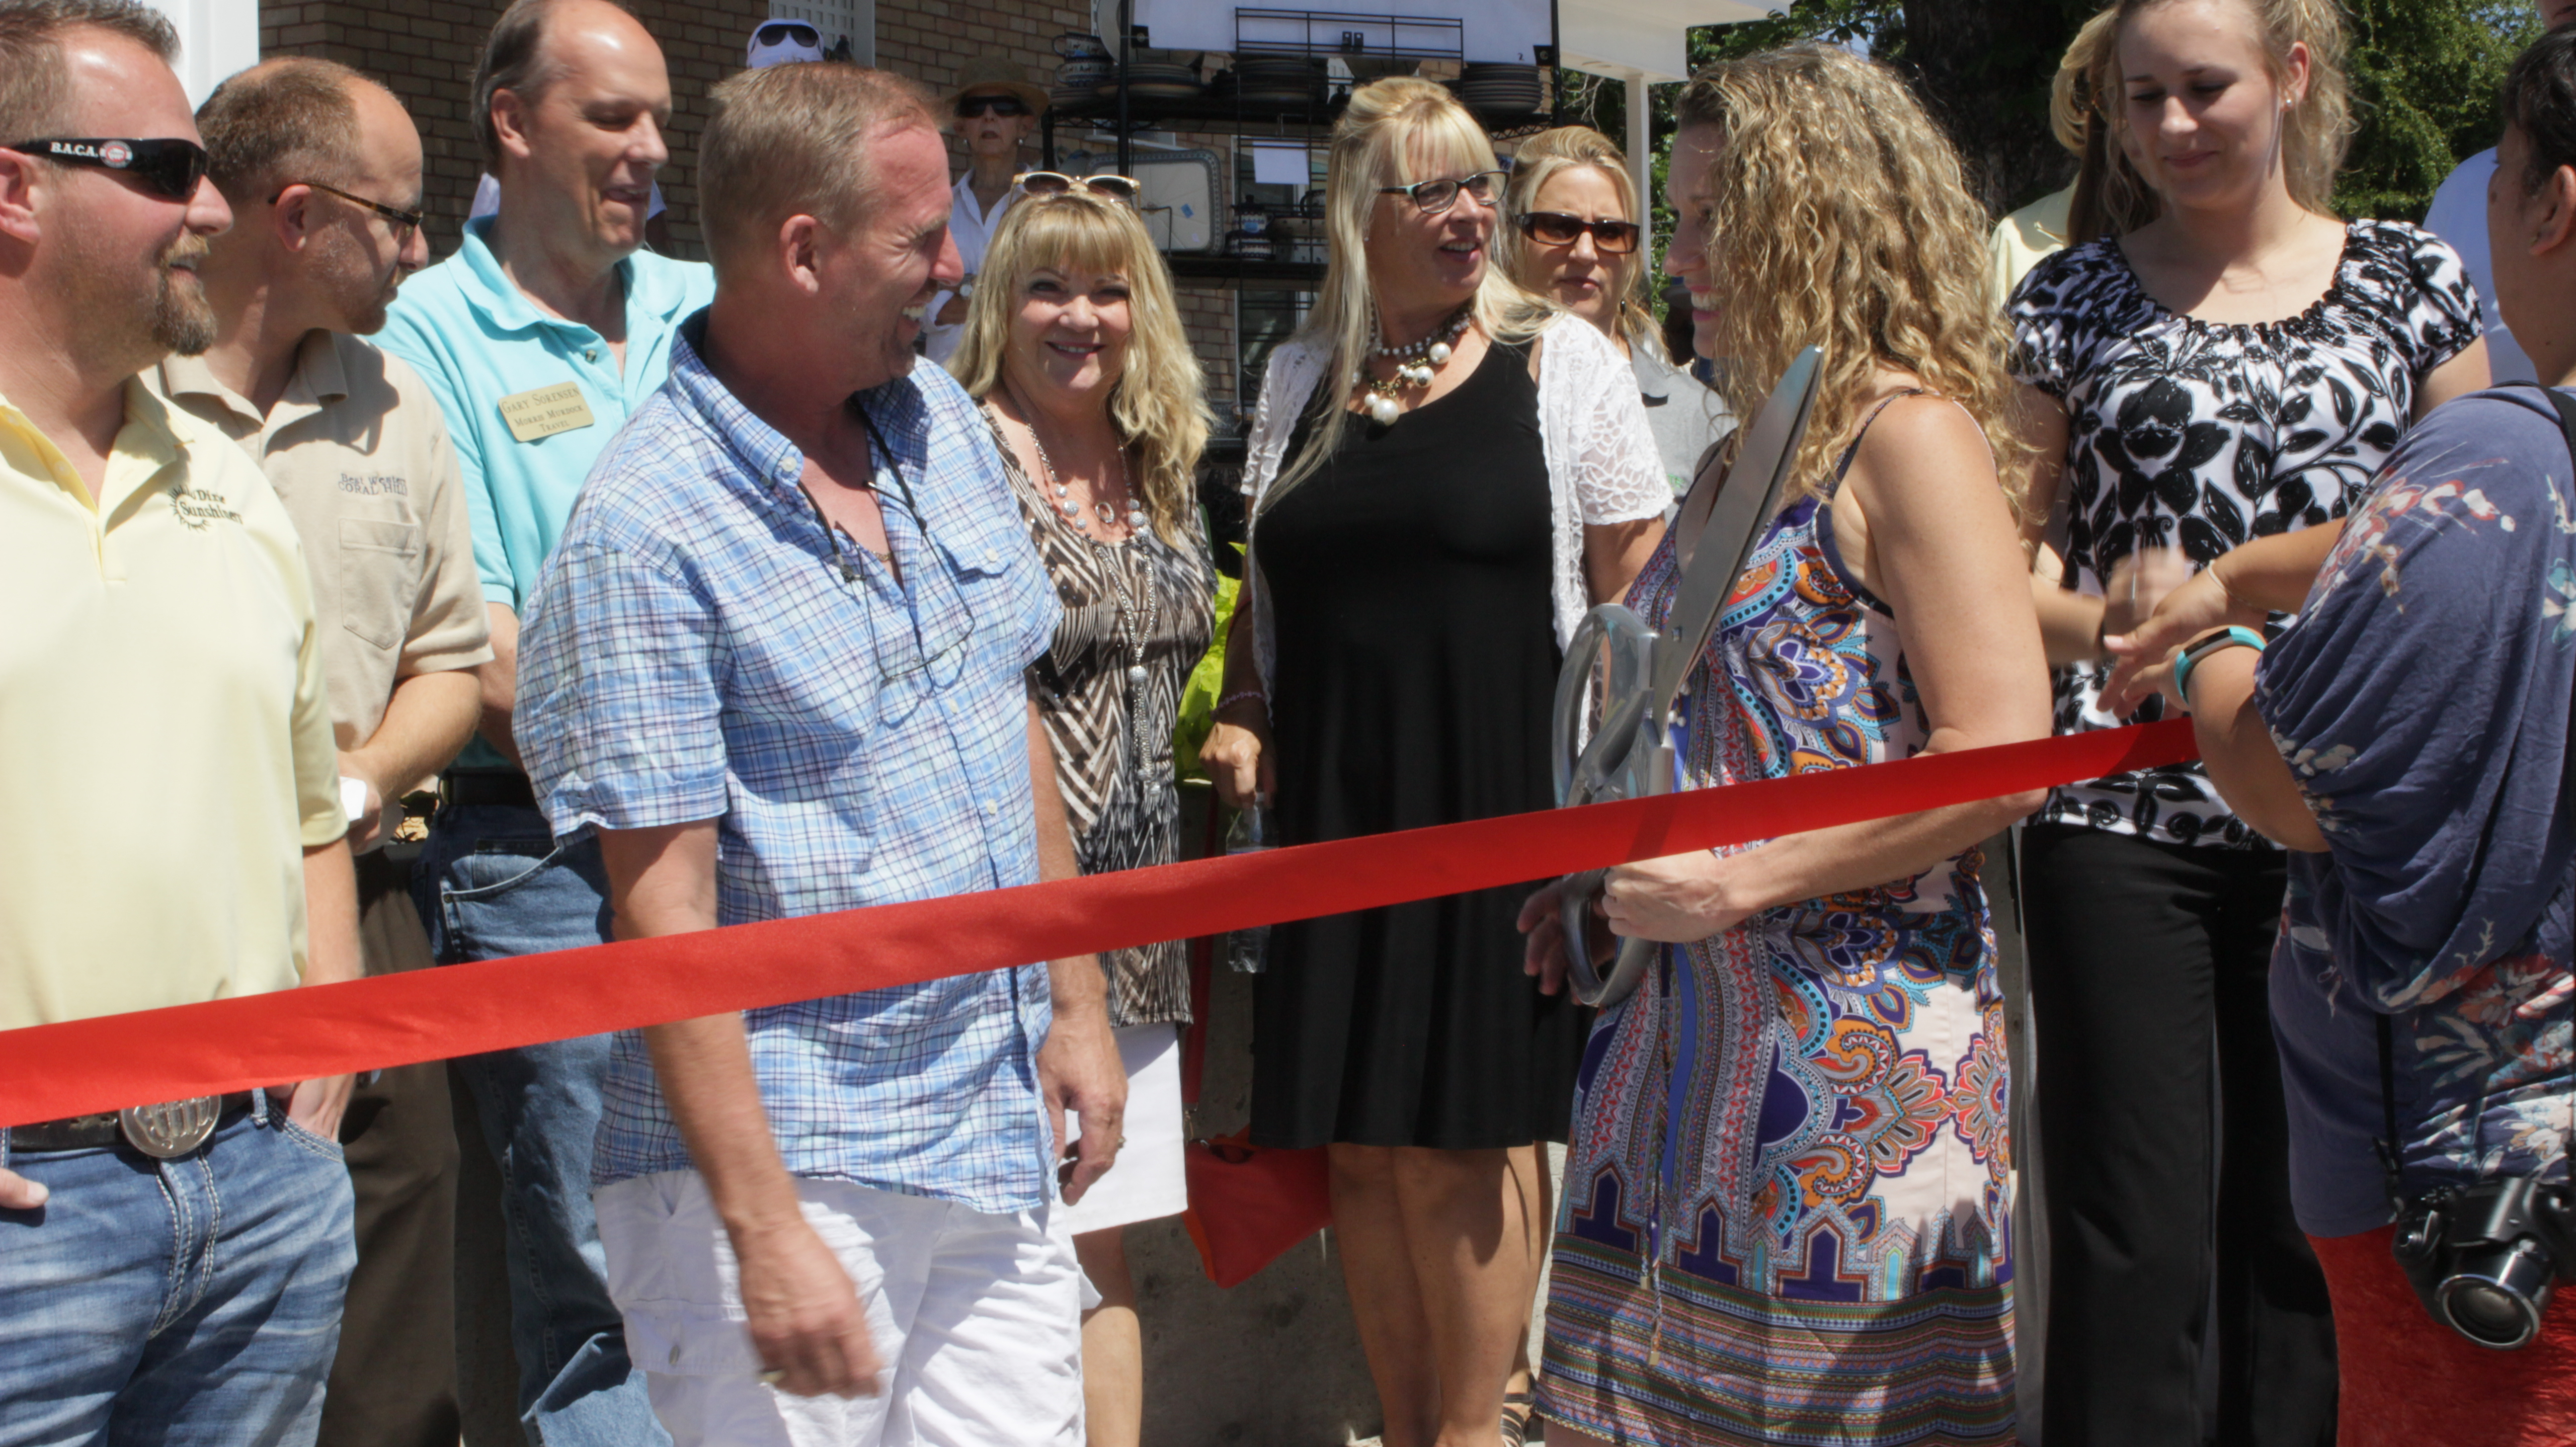 Kelly Chakos (L) and Twila Abrams (R) prepare to cut the ribbon and officially welcome the public to the Pottery Avenue Cottage, St. George, Utah, June 3, 2016 | Photo by Don Gilman, St. George News